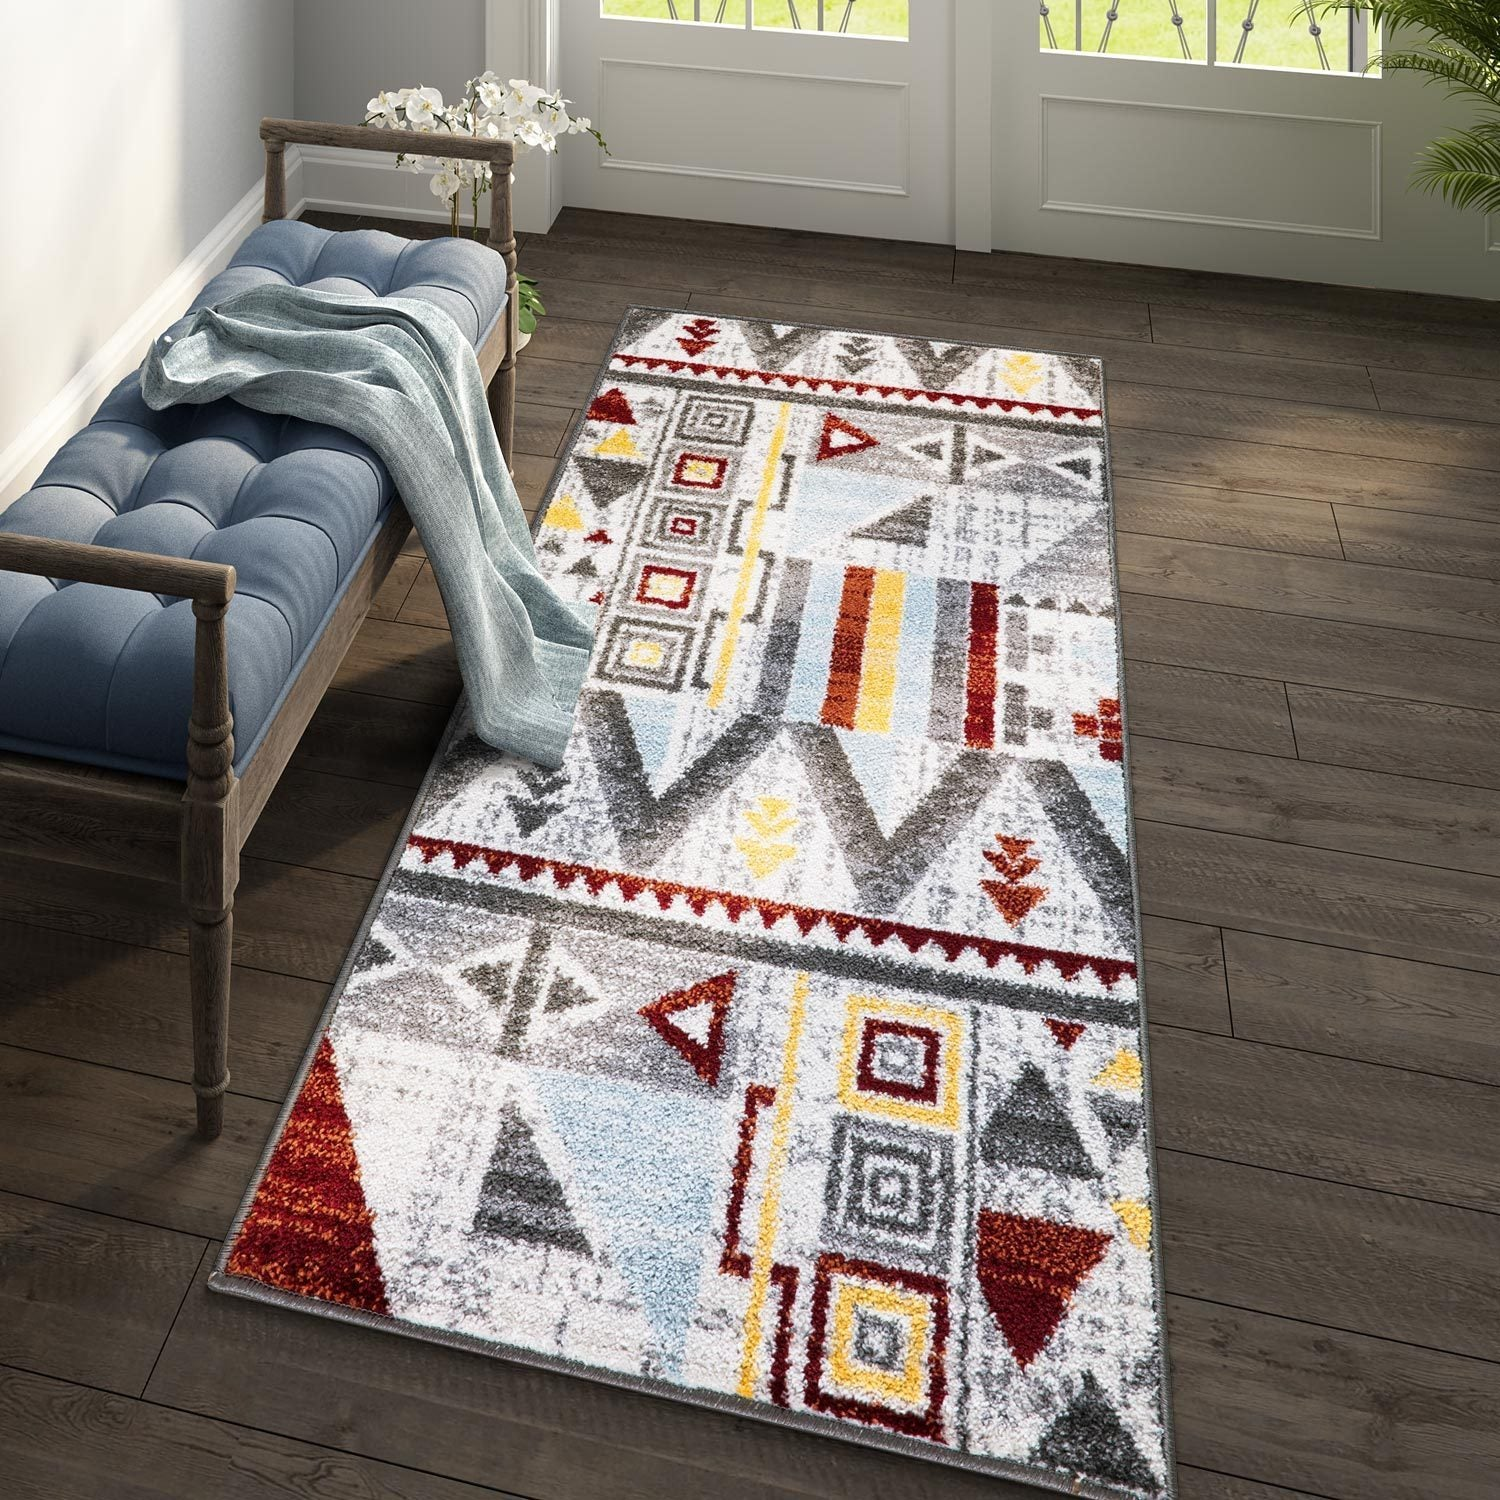 Geometric Tribal Rug Pic